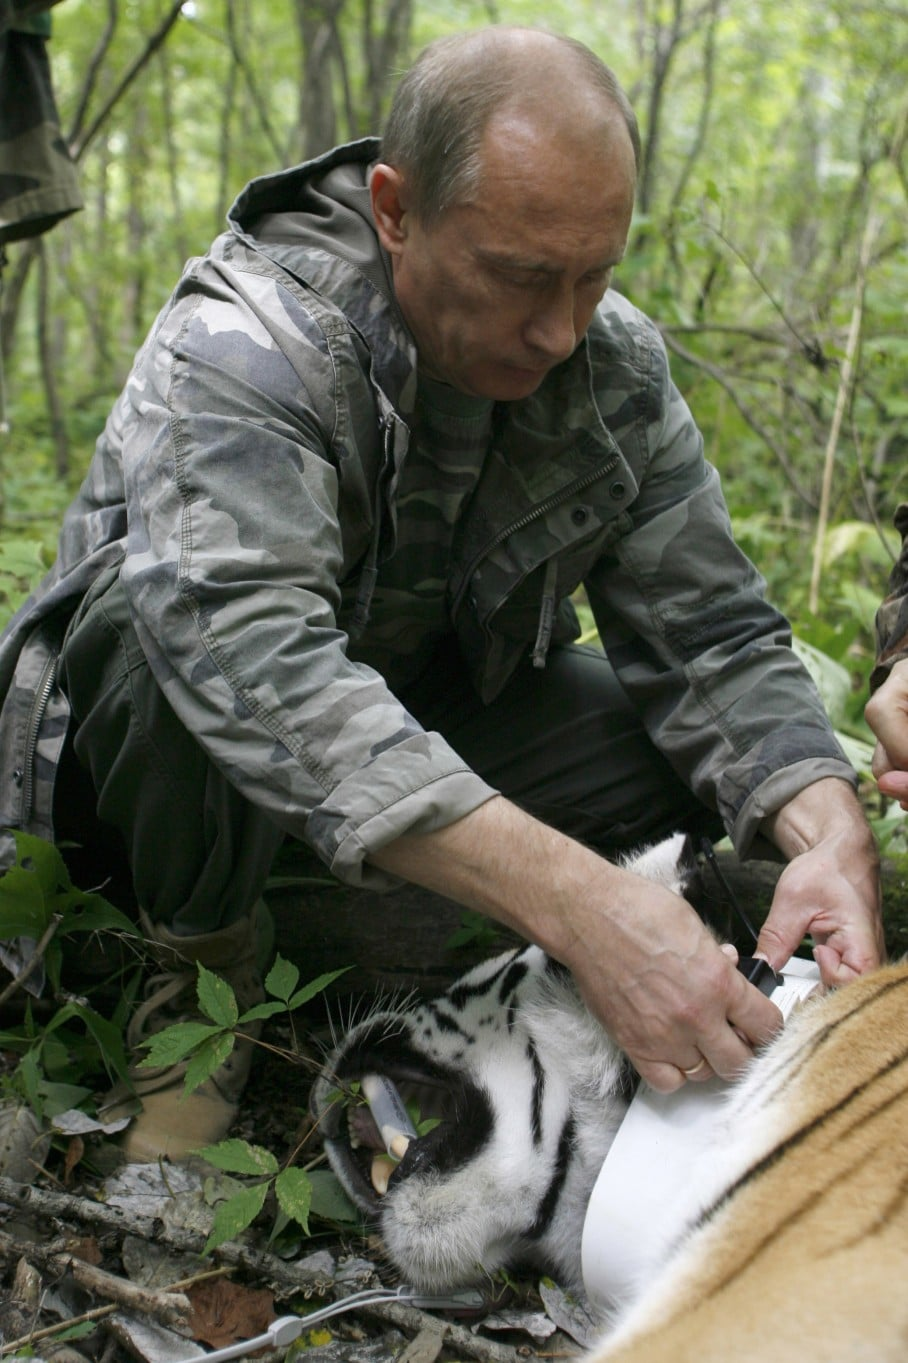 What S Up With Tough Guy Vladmir Putin S Love For Cute Animals The Washington Post